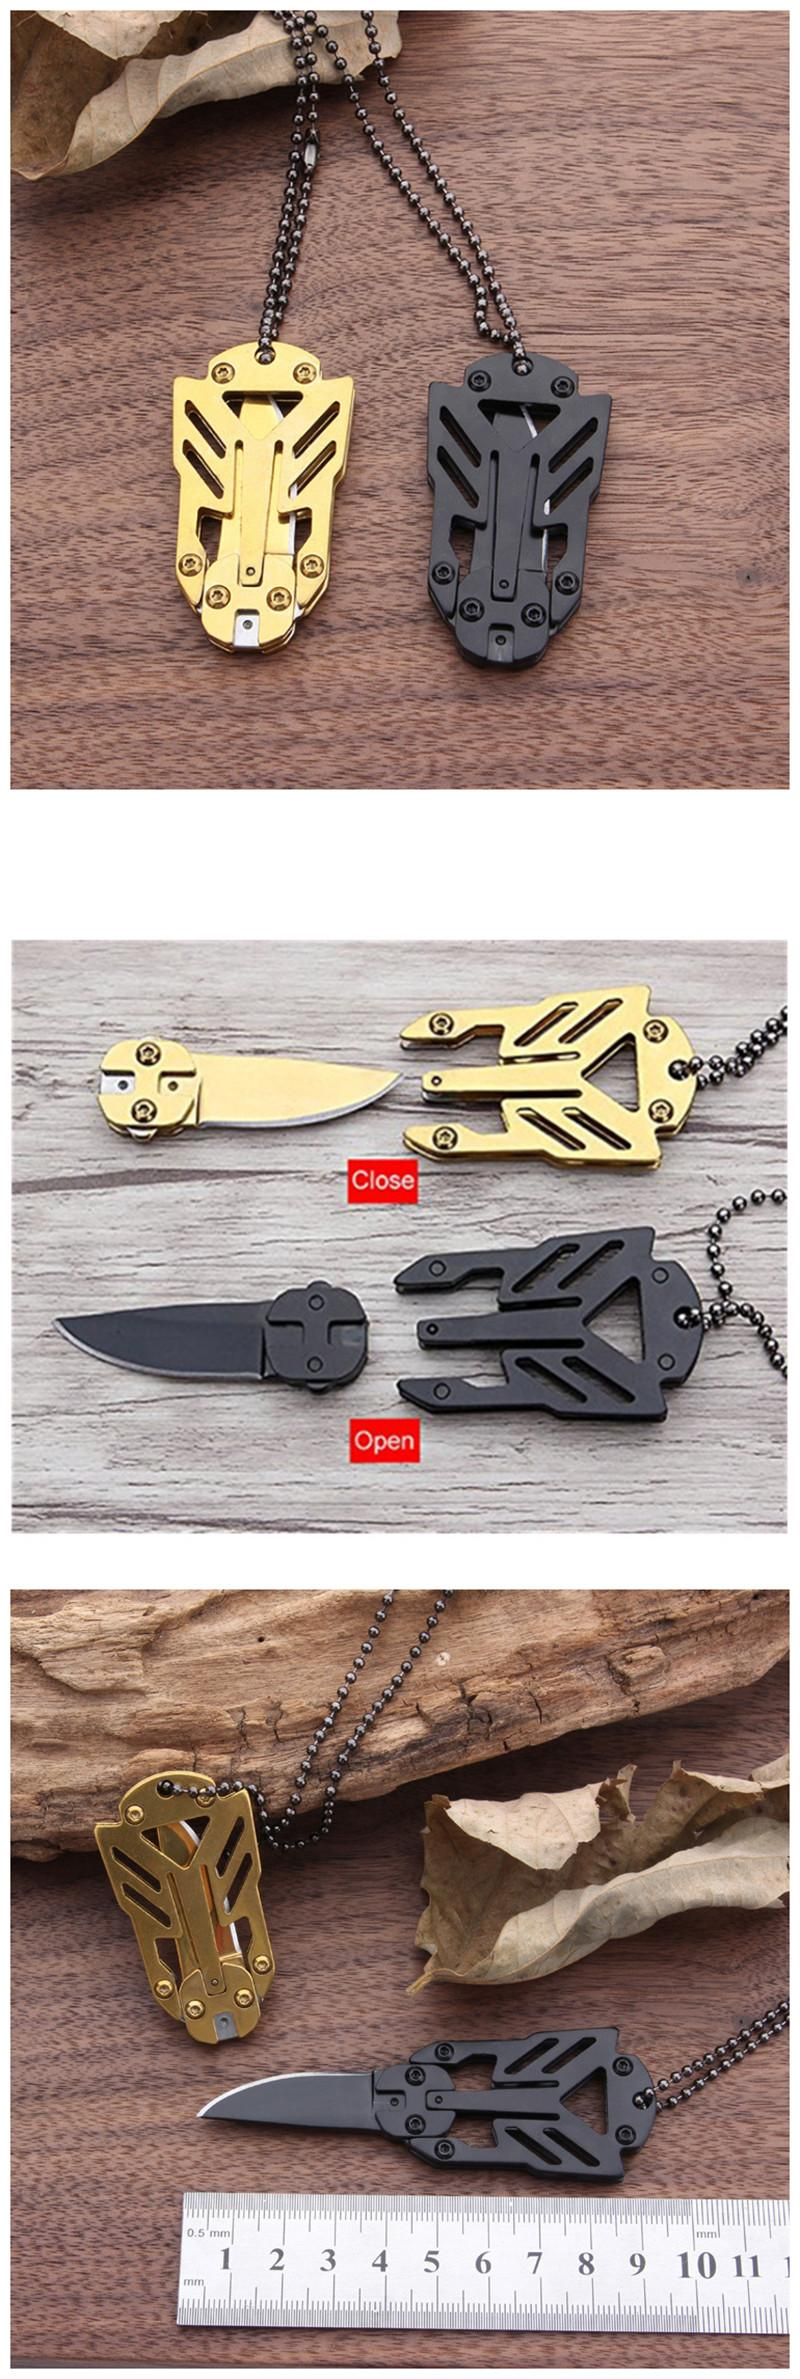 Multiple Tools EDC Outdoor Survival Tools Survive Self-Defense Necklace Camping Stool Folding Tactical Knives for Hiking Camping (7)